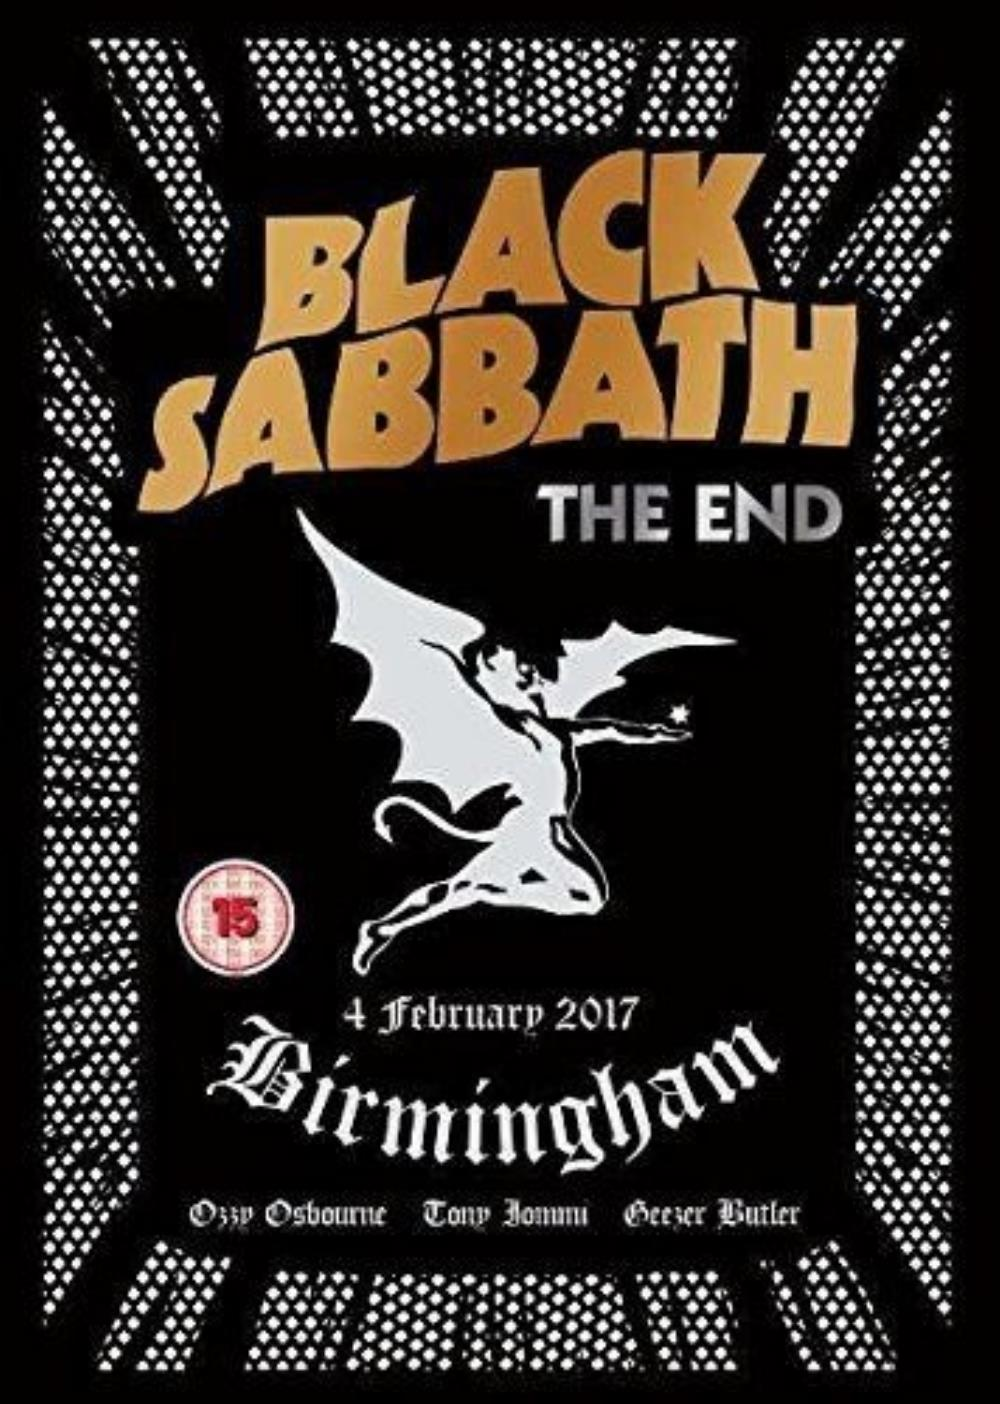 Black Sabbath The End - 4 February 2017, Birmingham album cover